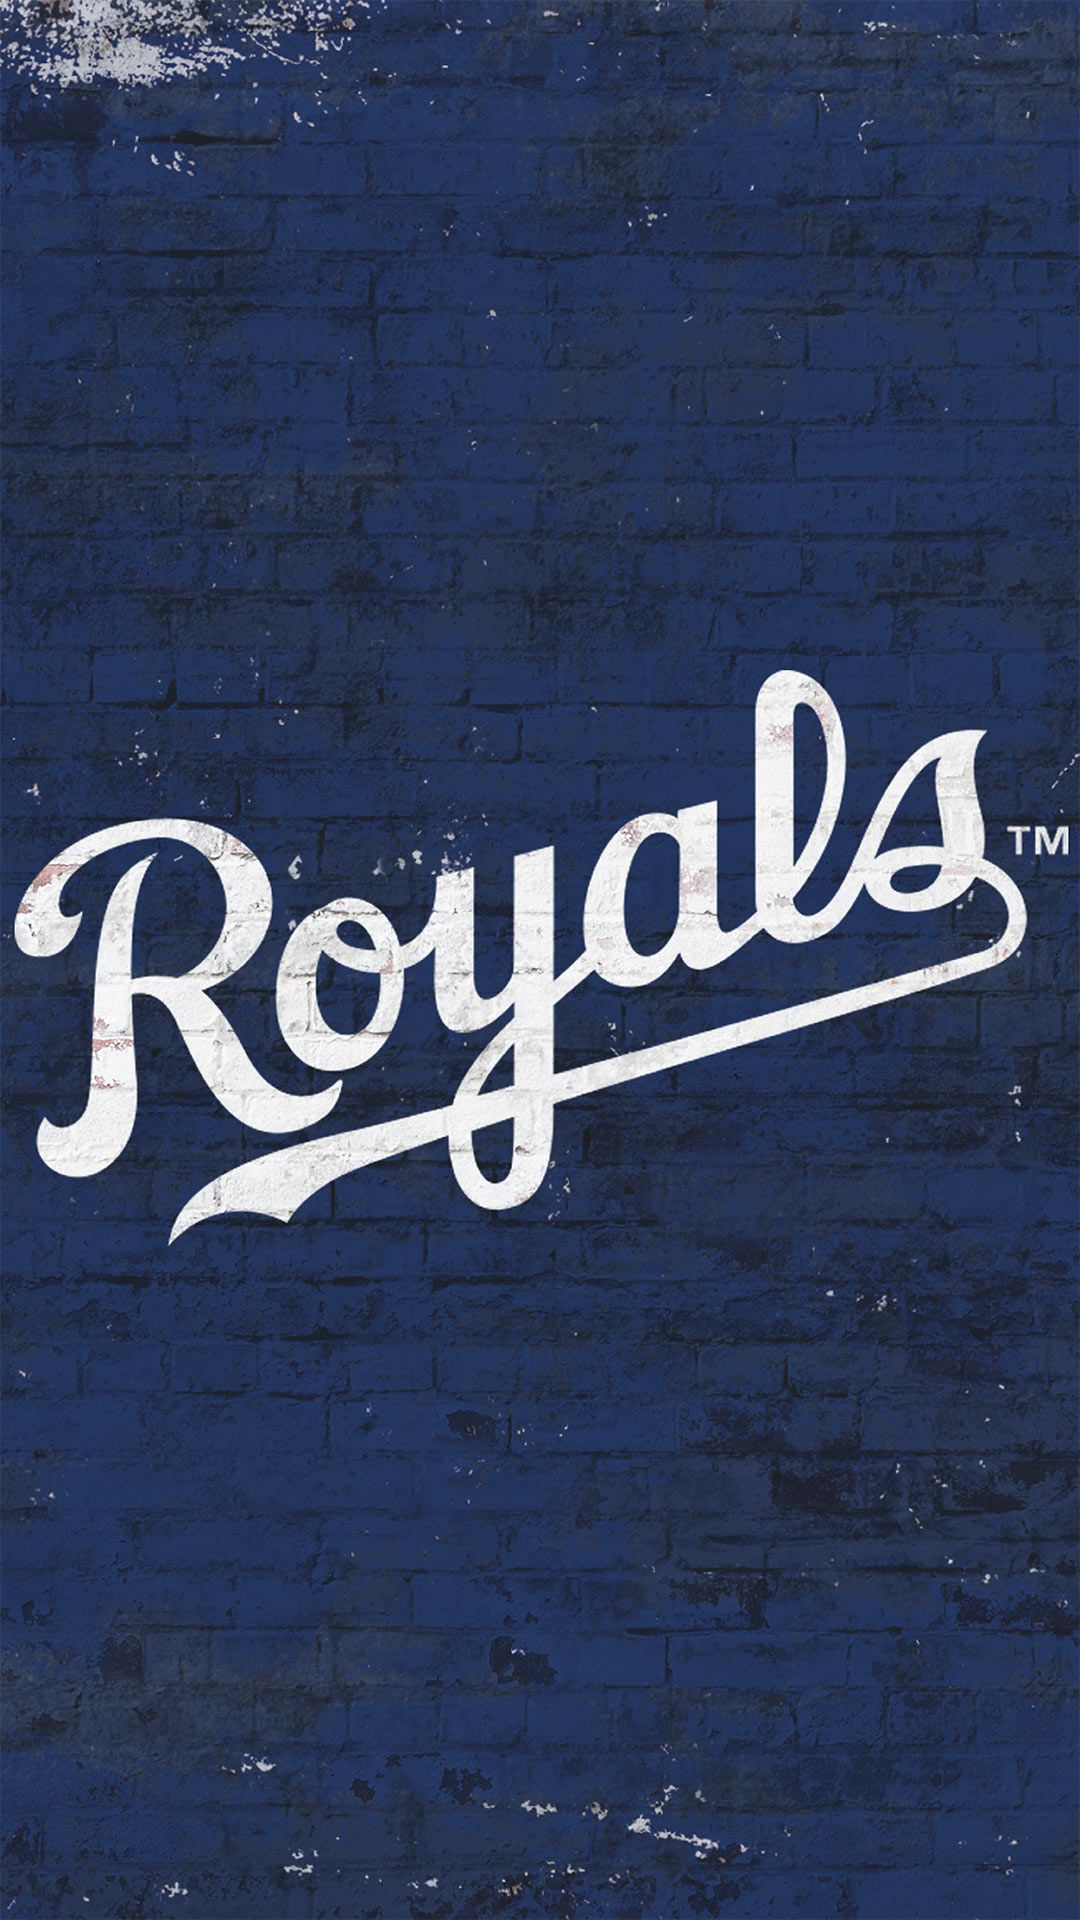 1080x1920 Mobile Wallpapers | royals.com: Raised Royal